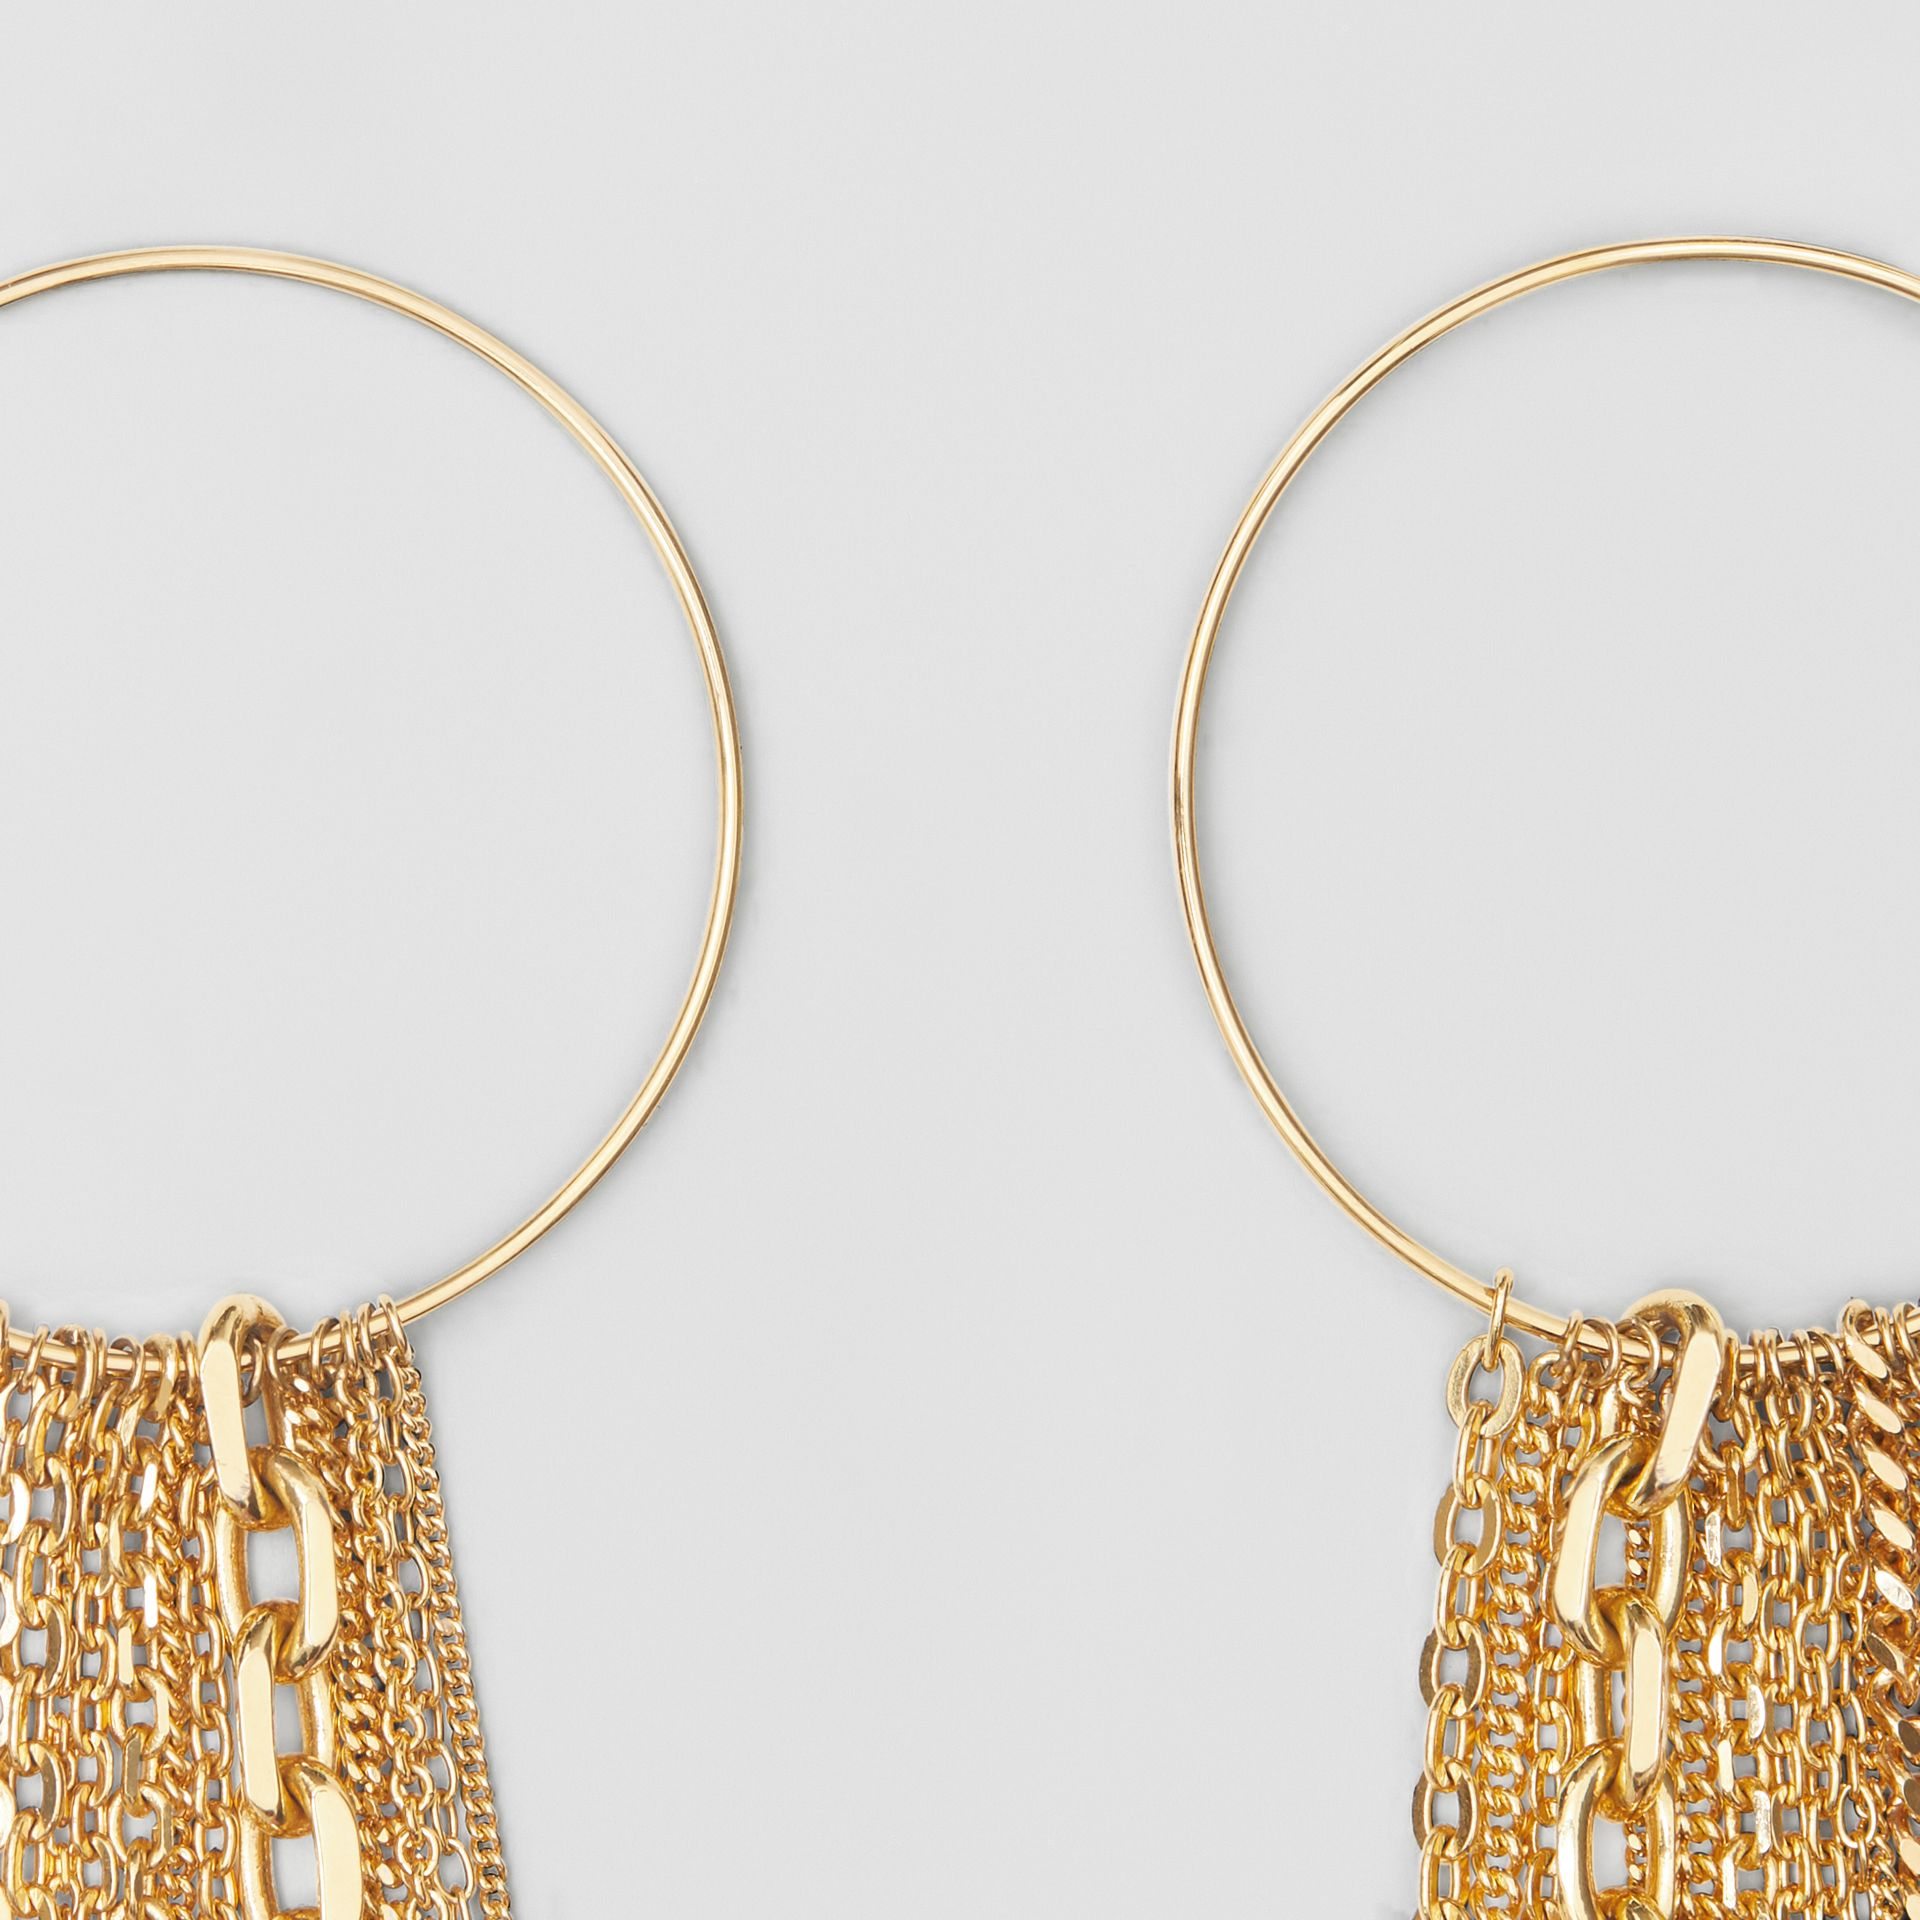 Chain Detail Gold-plated Hoop Earrings in Light - Women | Burberry - gallery image 2